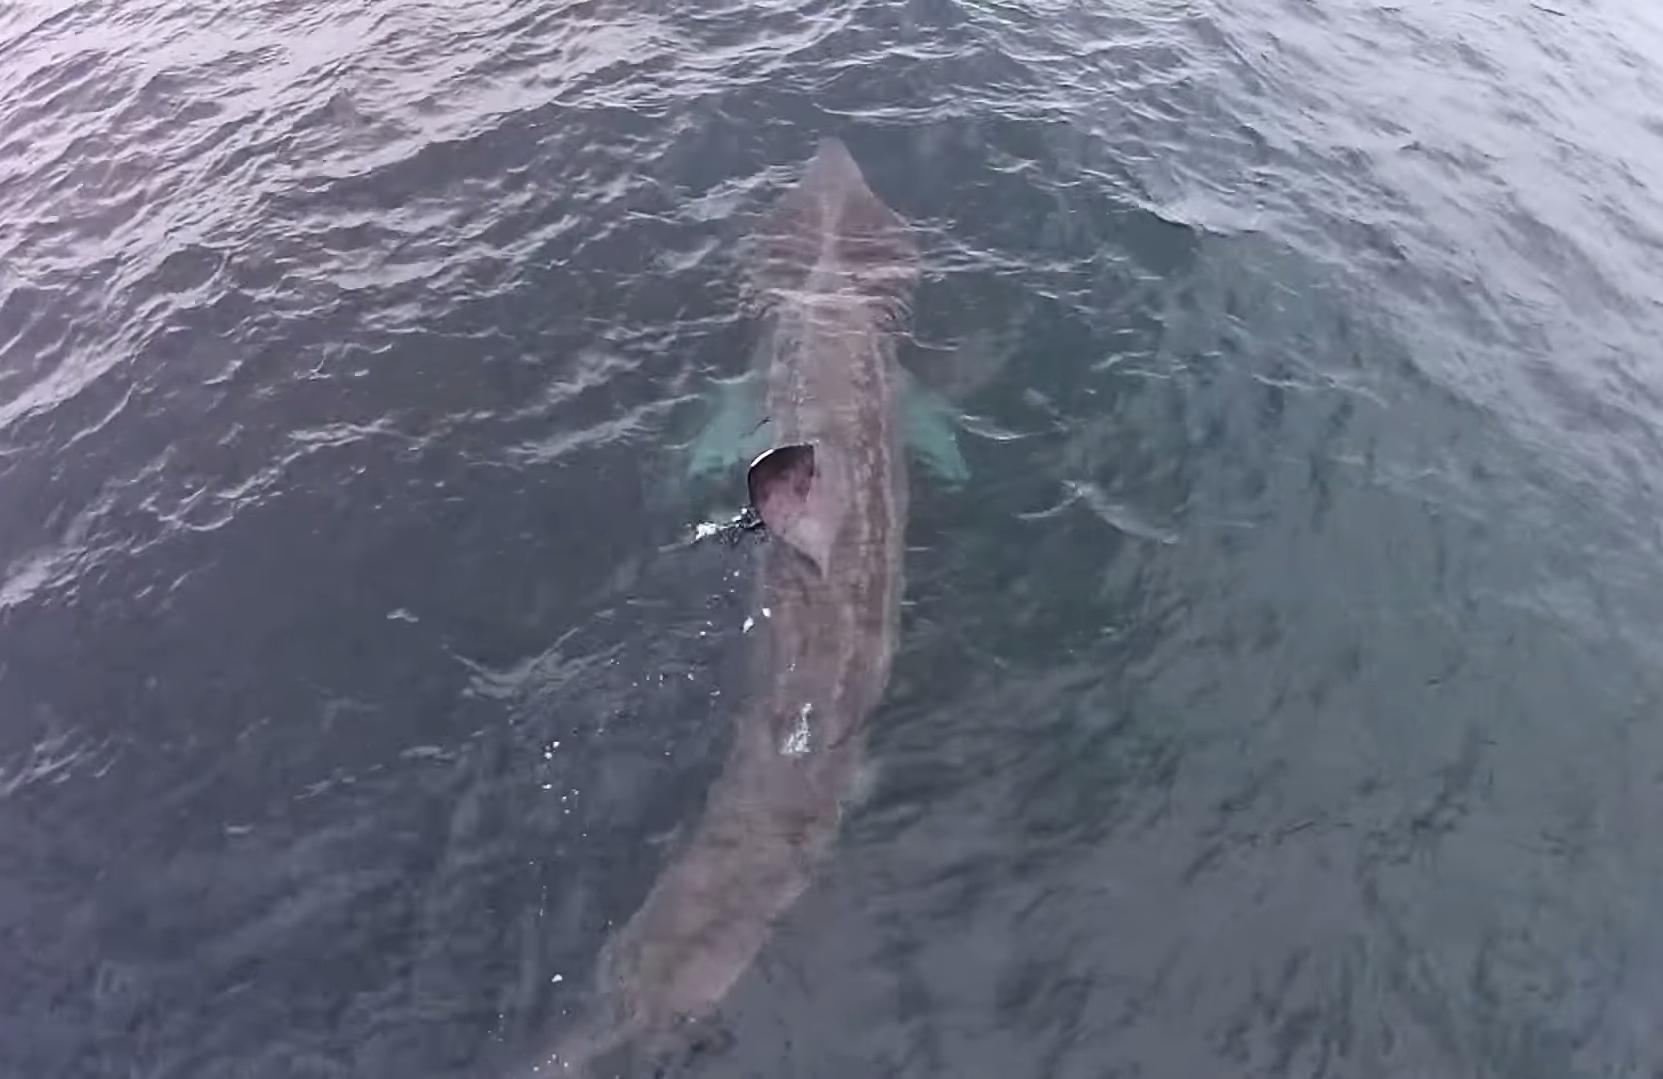 Around 100 basking sharks were spotted in the area